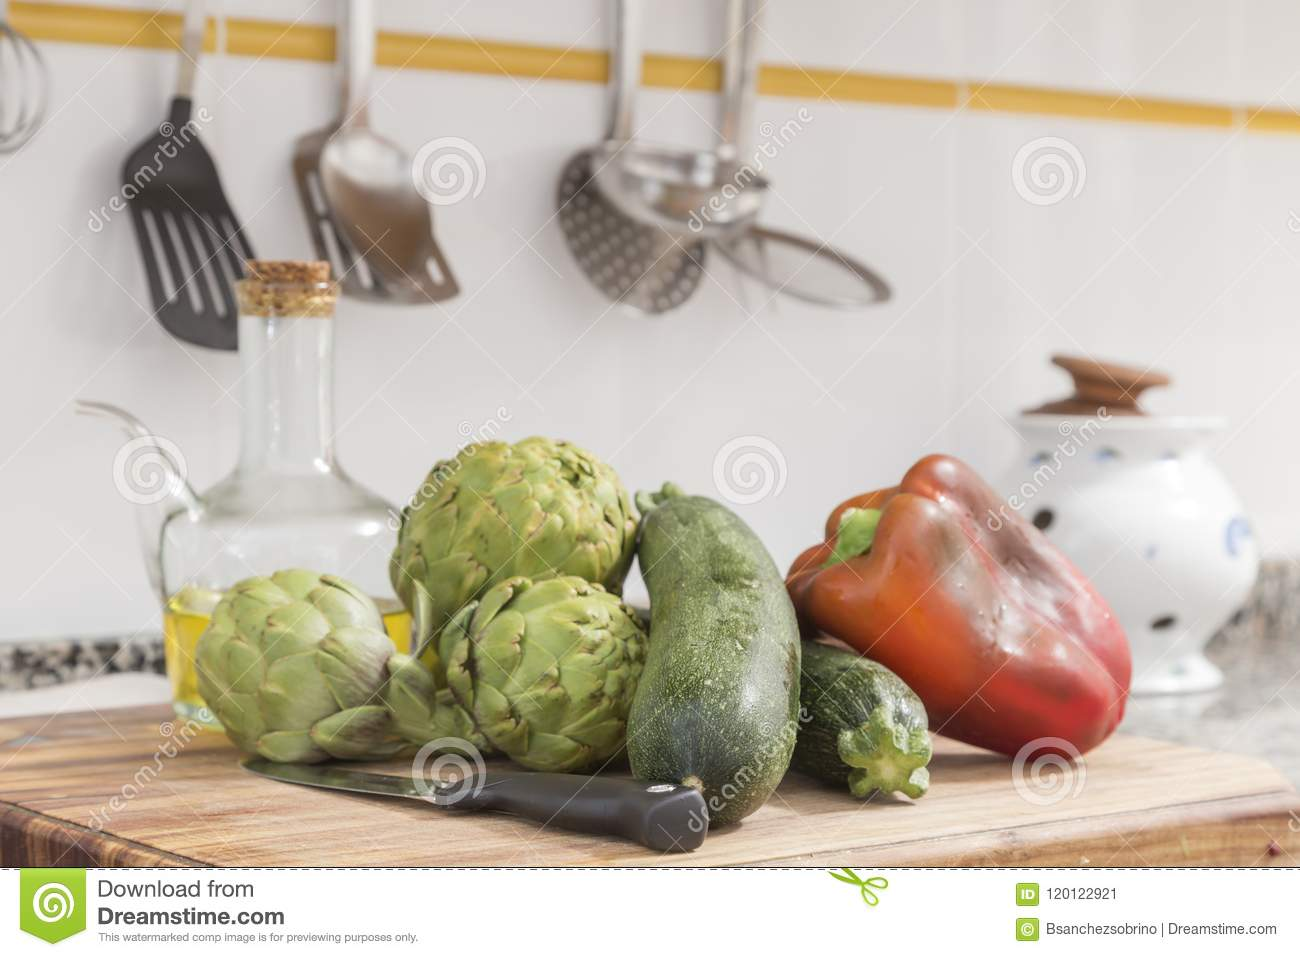 Still Life With Raw Vegetables And Oil In The Kitchen Stock Image ...